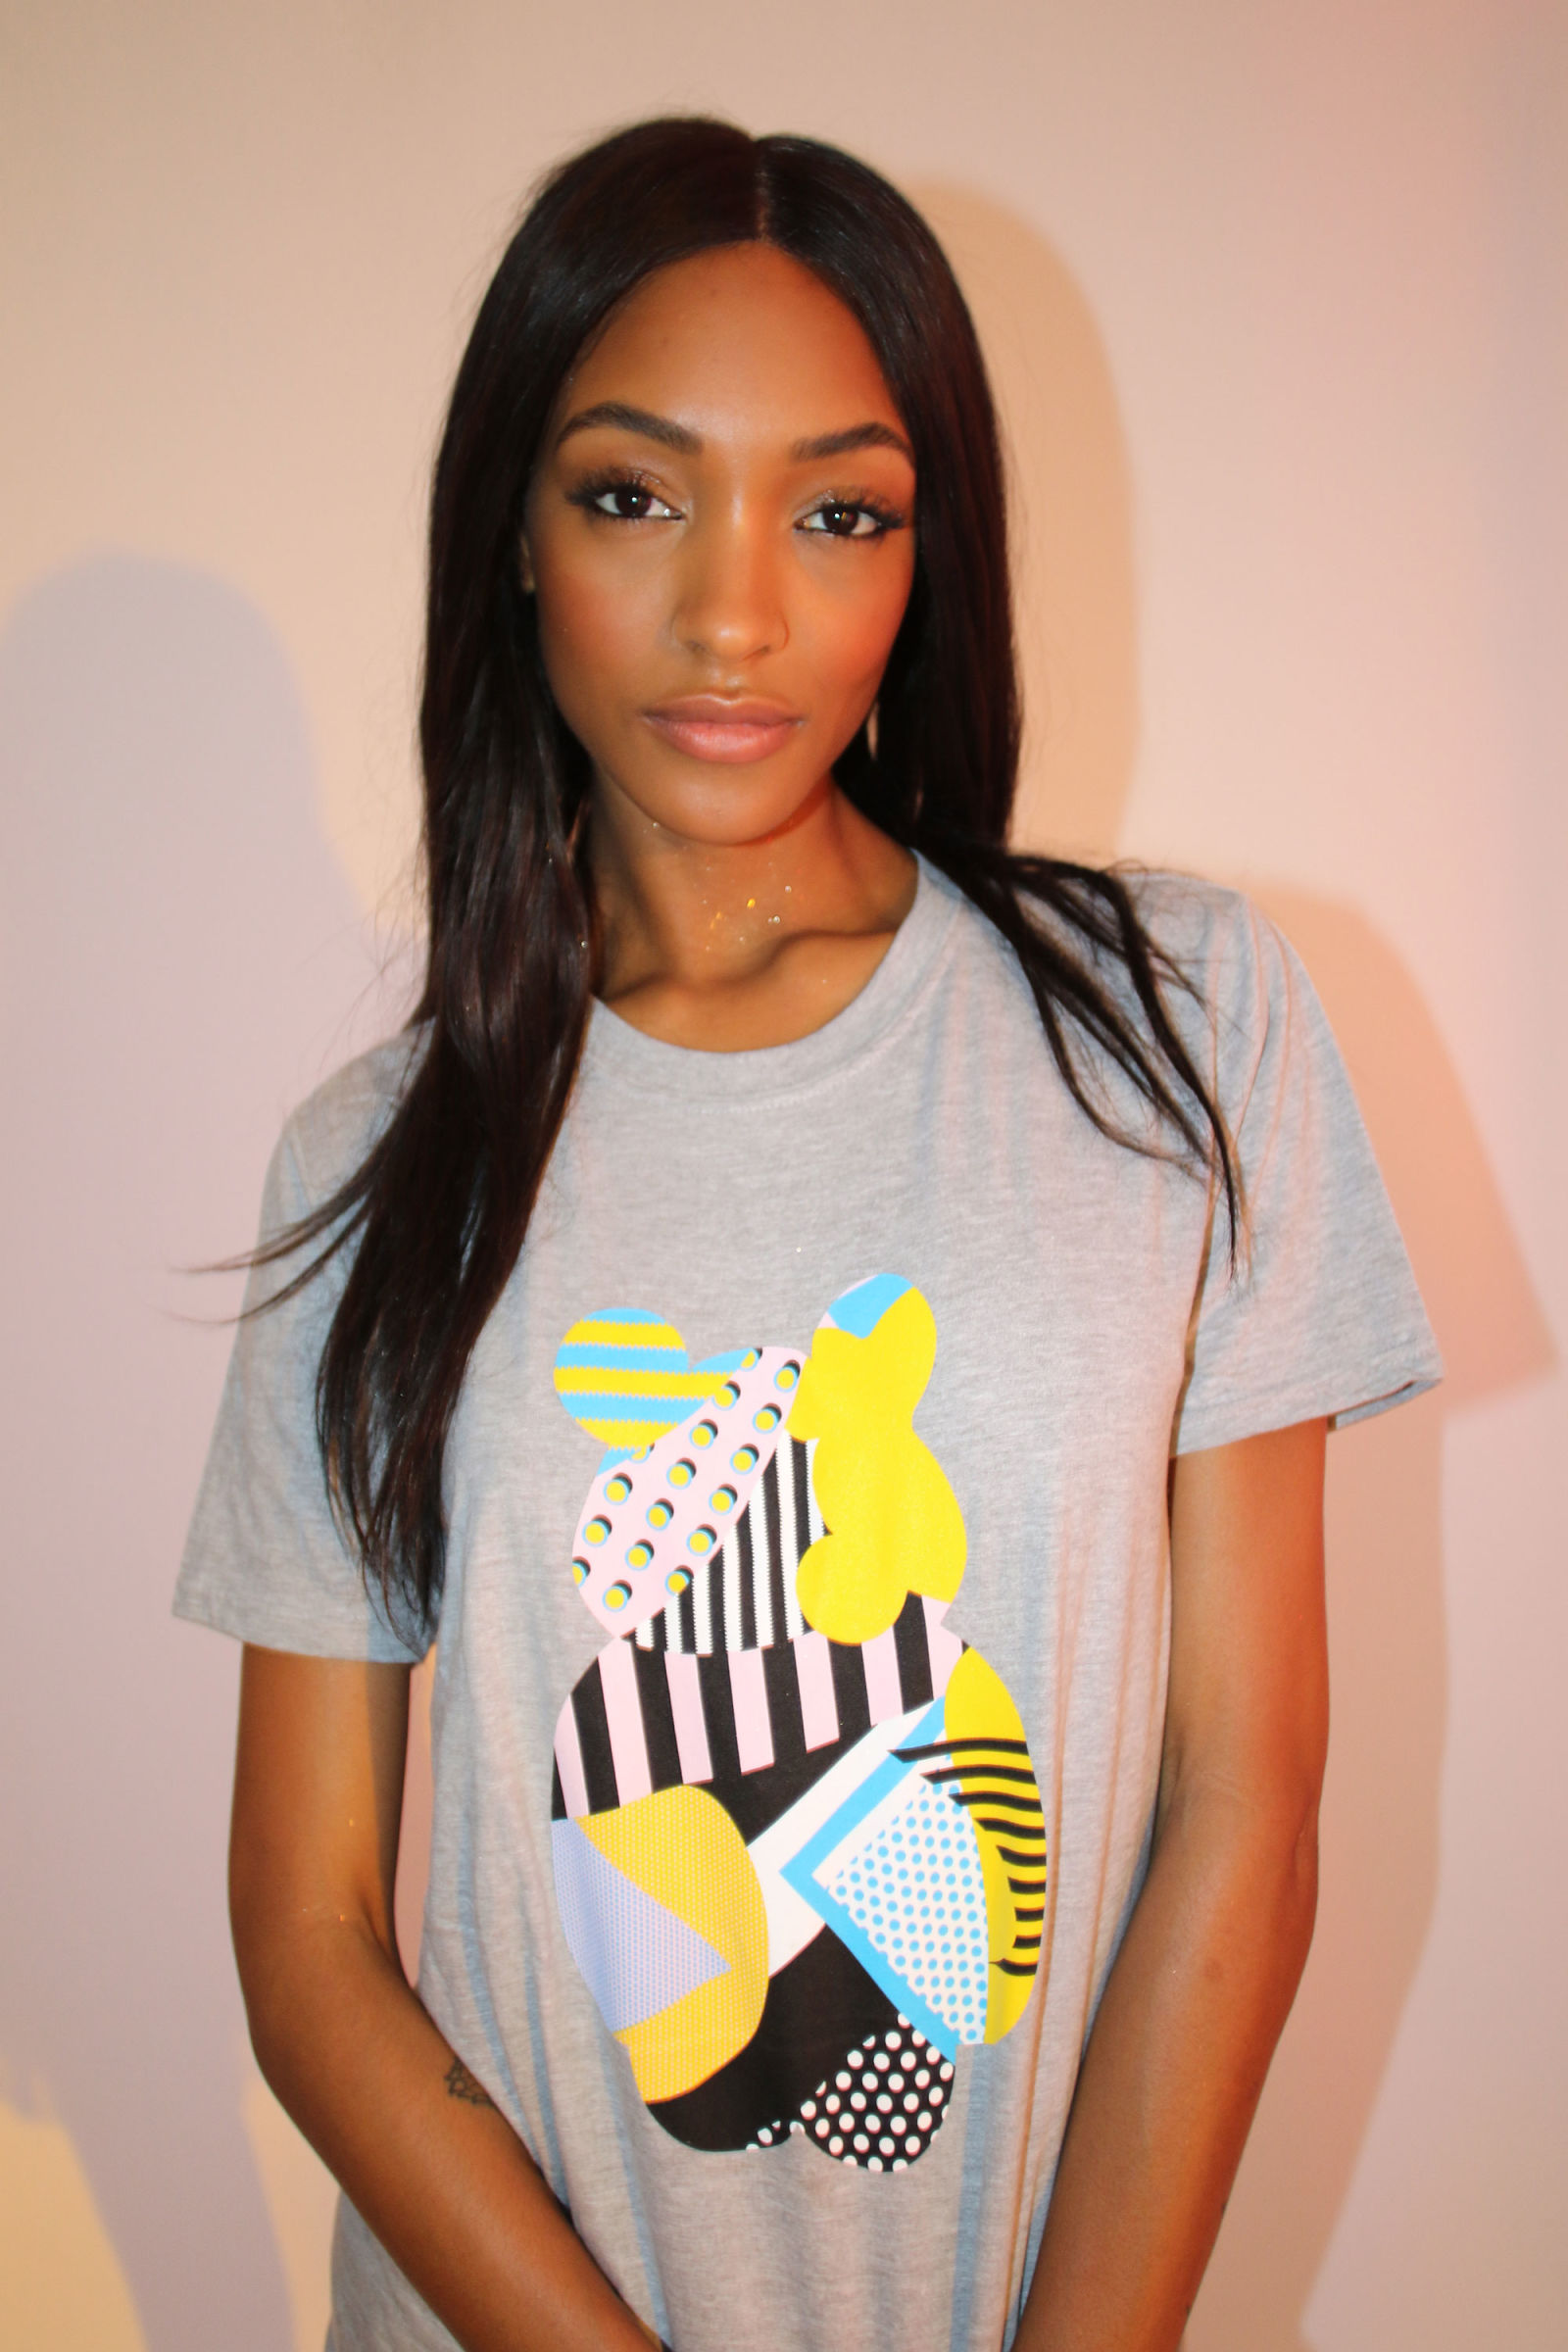 1476884018-syn-hbz-1476869487-jourdan-dunn-is-pictured-in-the-bbc-children-in-need-t-shirt-image-by-katie-grand